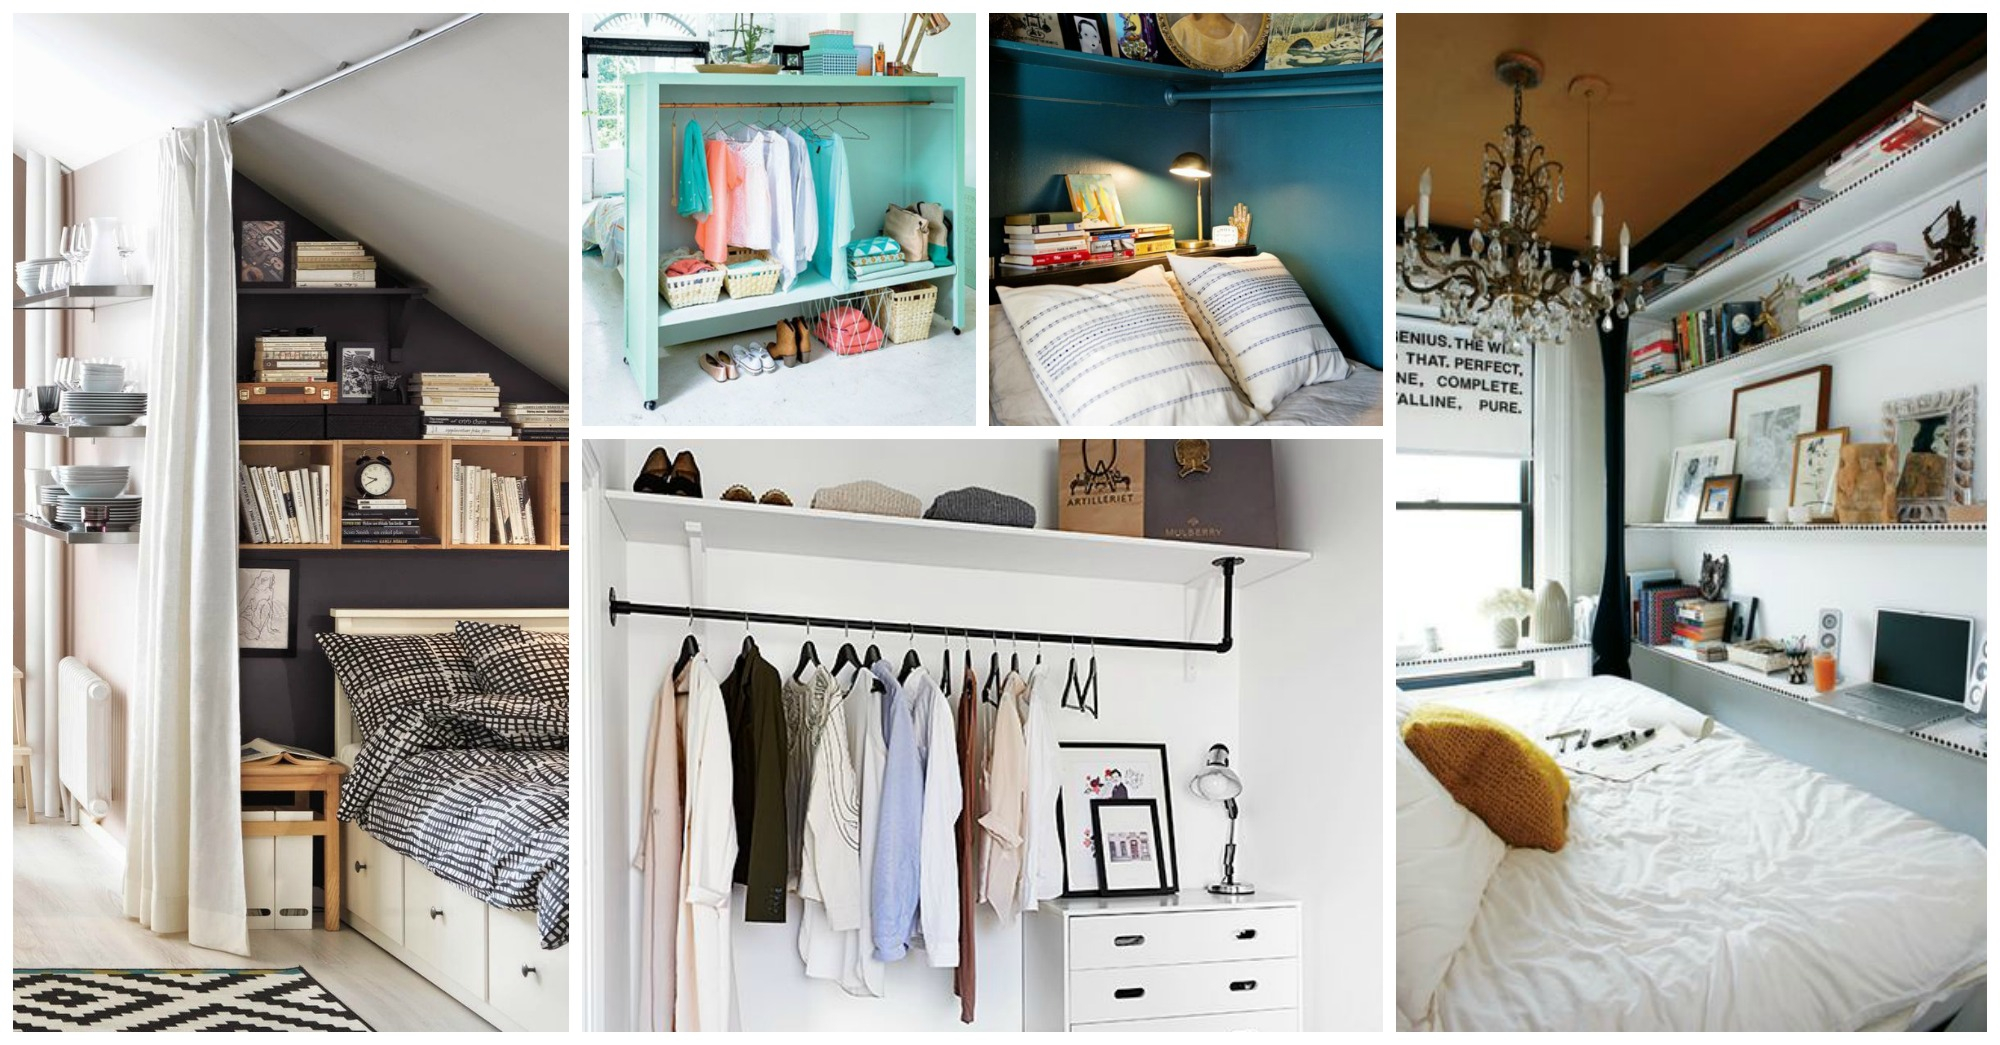 Lovely 10 Smart Bedroom Hacks For Small Bedrooms intended for Small Bedroom Hacks